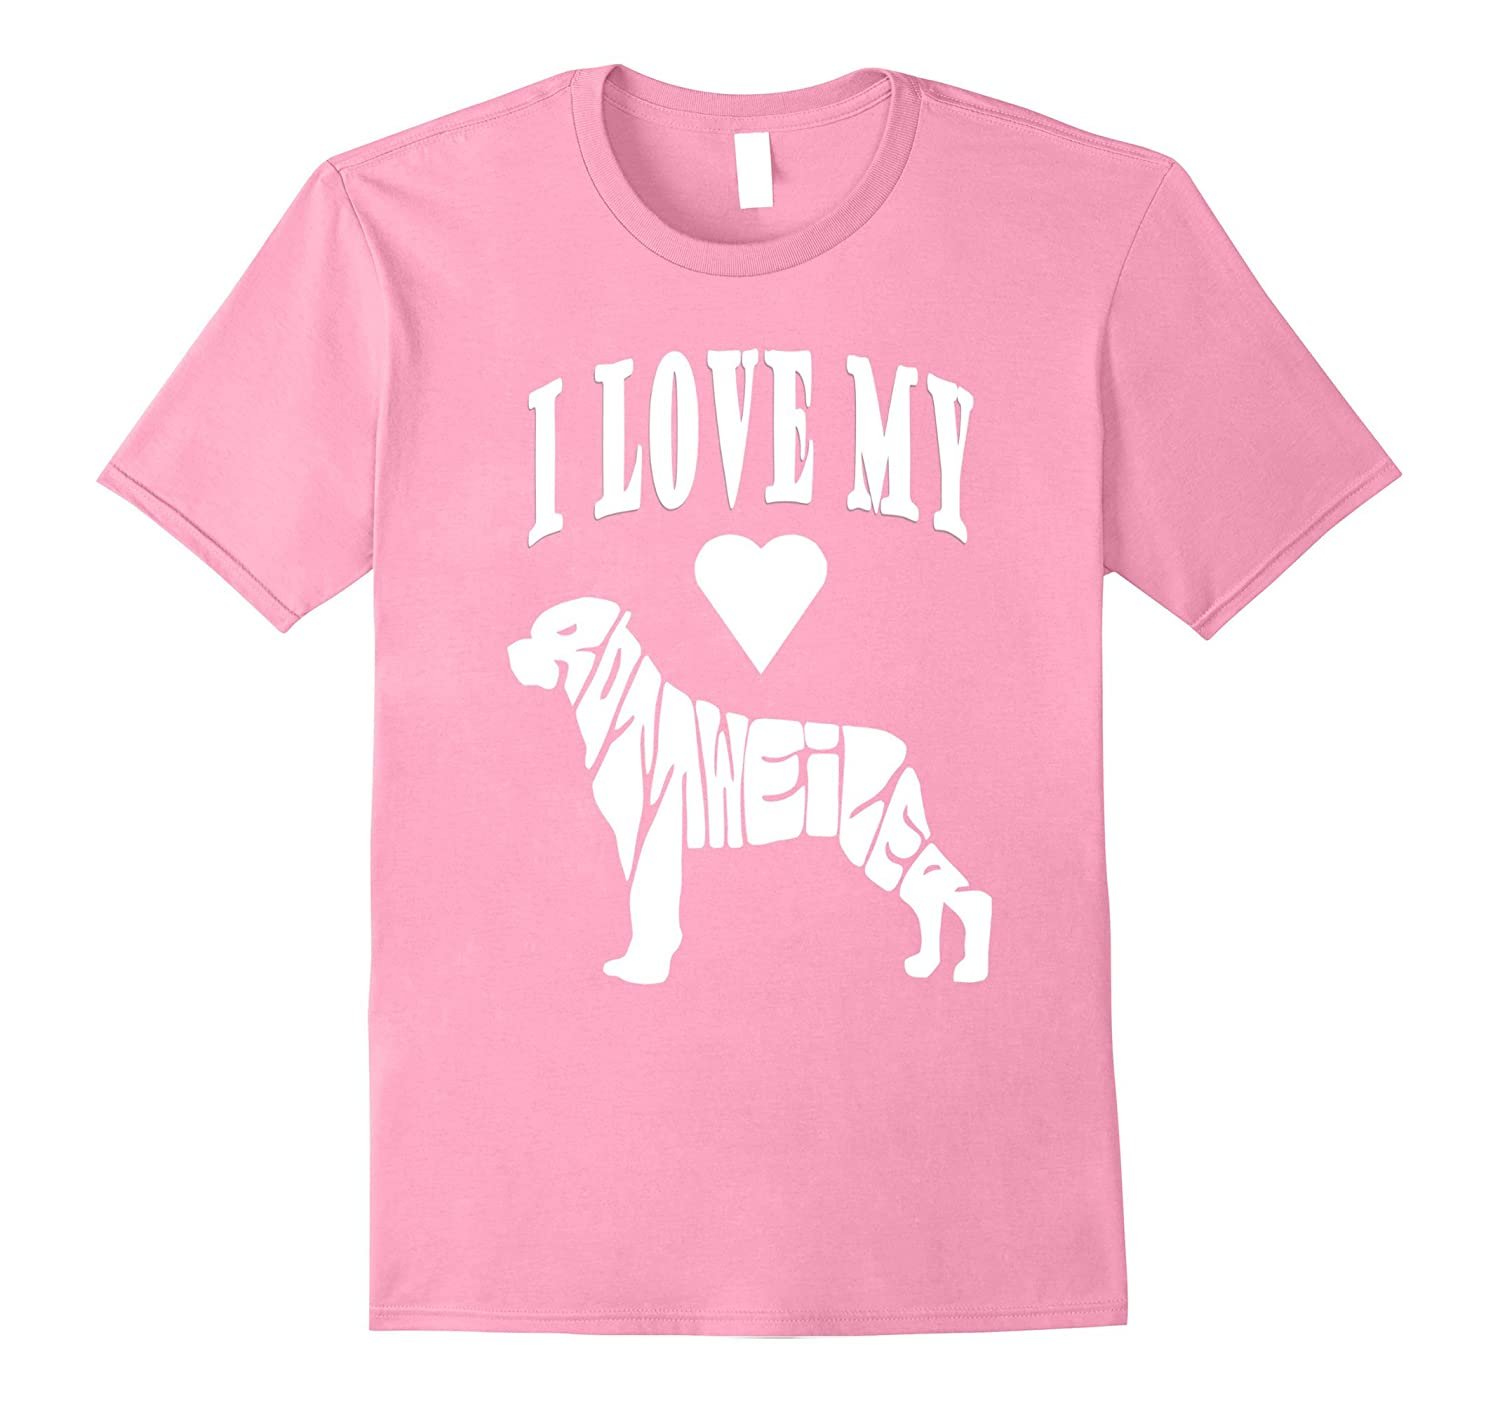 I love my Rottweiler t-shirt for dog mom and dad dog lovers-FL